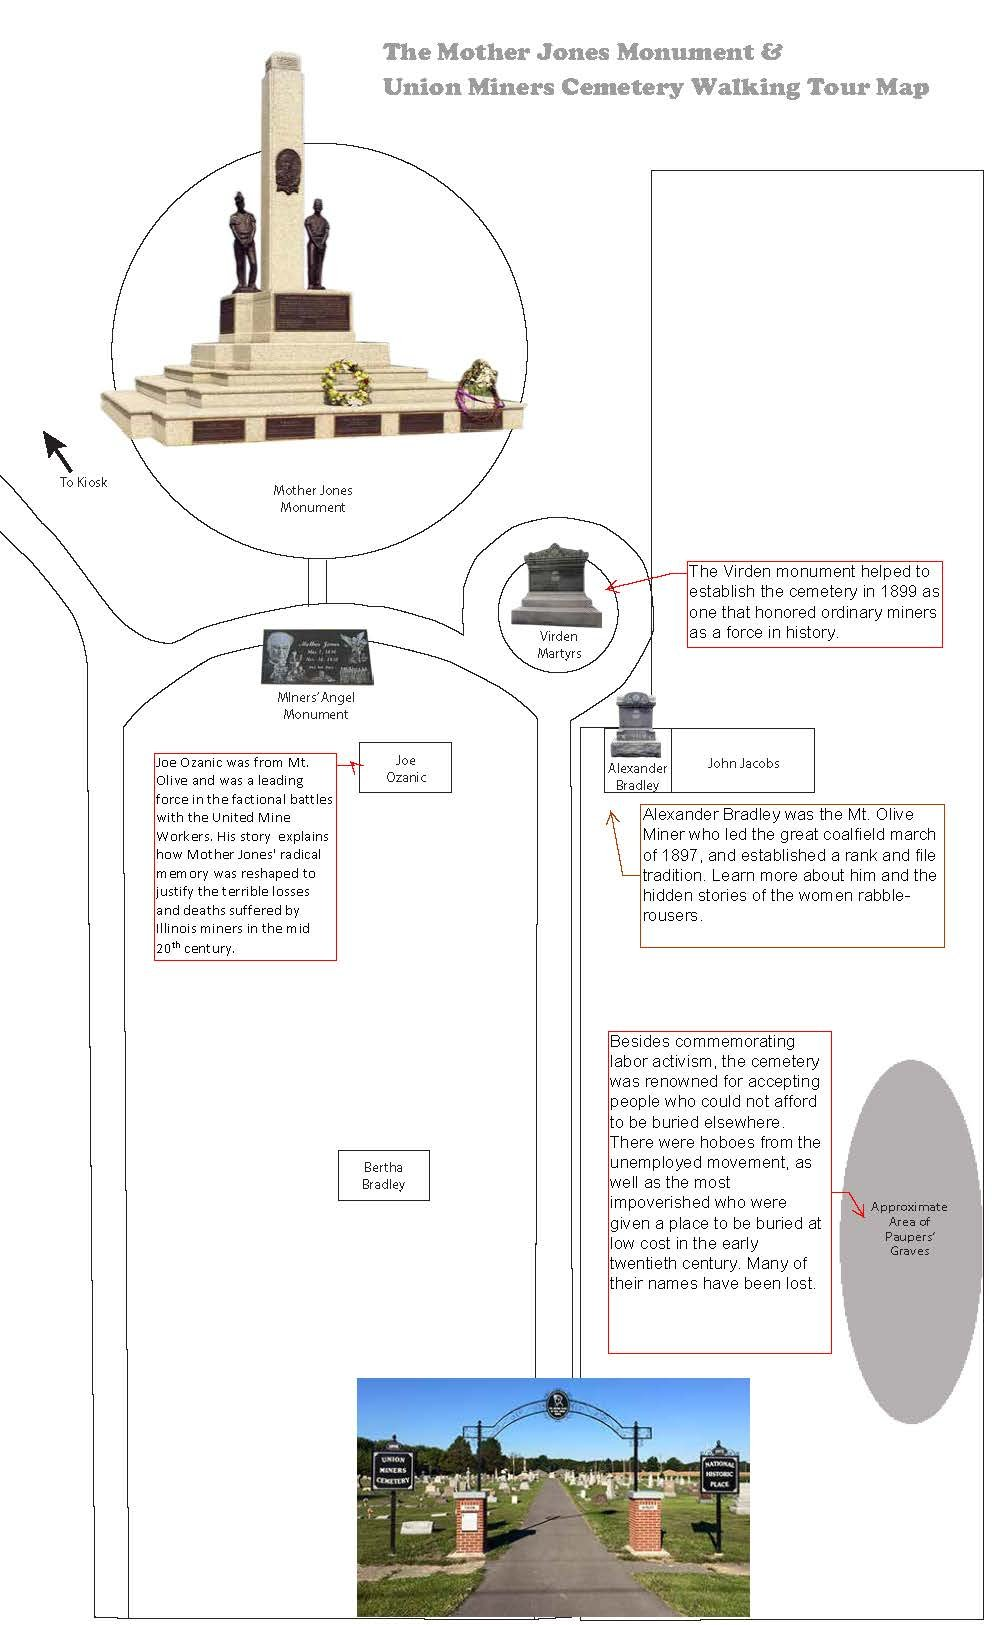 Overview: This map is also available at http://www.motherjonesmuseum.org/wp-content/uploads/2018/12/UnionMinerCemetery-12-10_Page_1.jpg, designed by Kate Klimut. A fuller tour will also be available there by January 2019